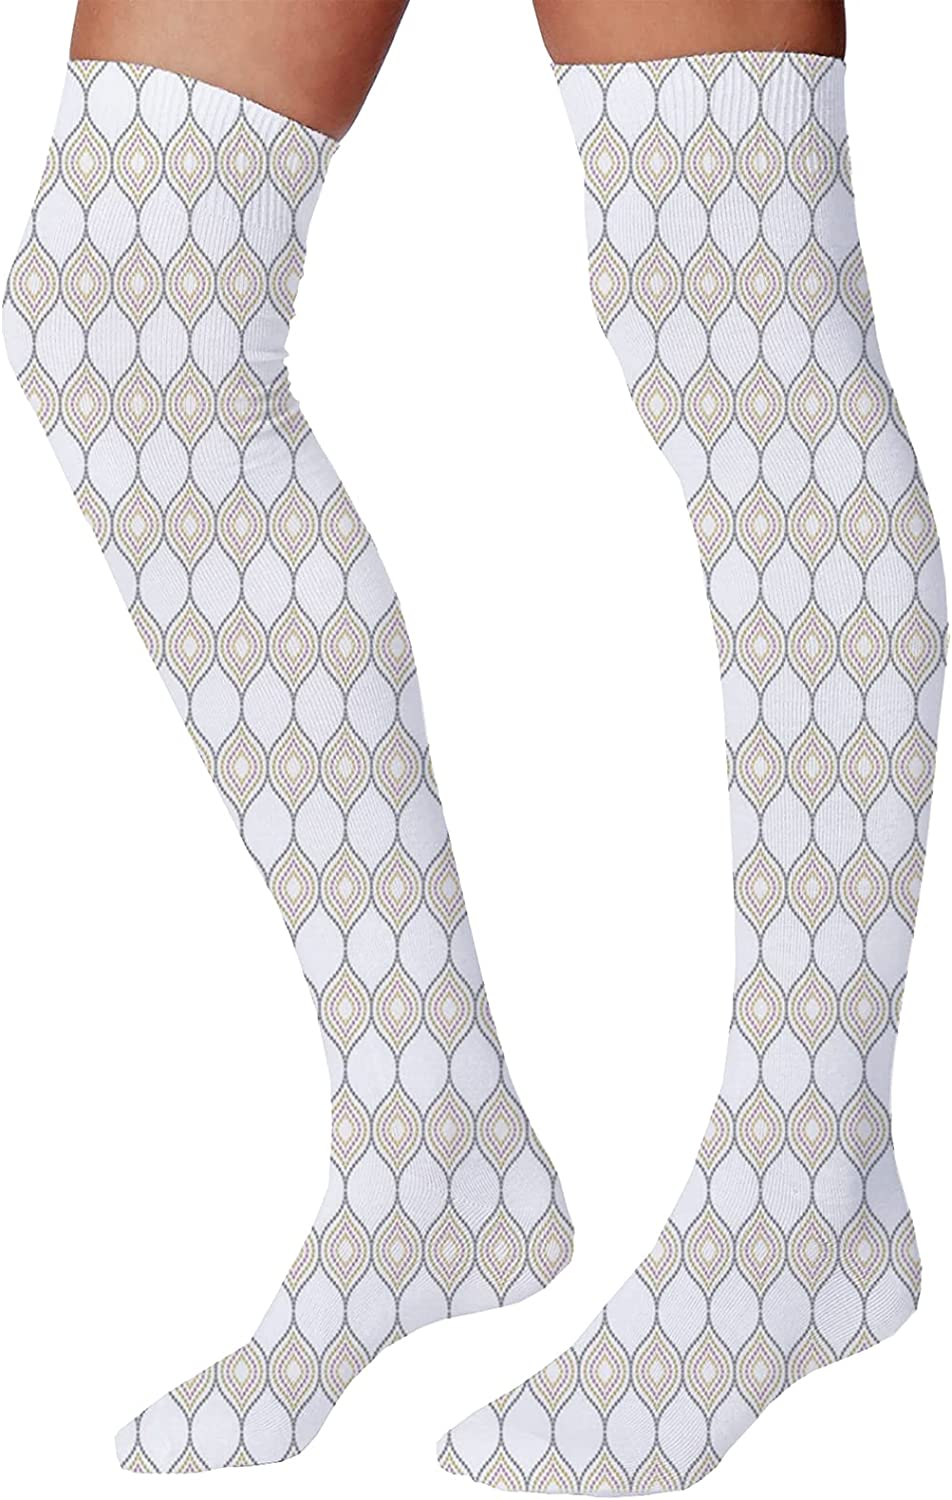 Men's and Women's Fun Socks,Abstract Artistic Illustration of a Baseball Player Posing Grunge